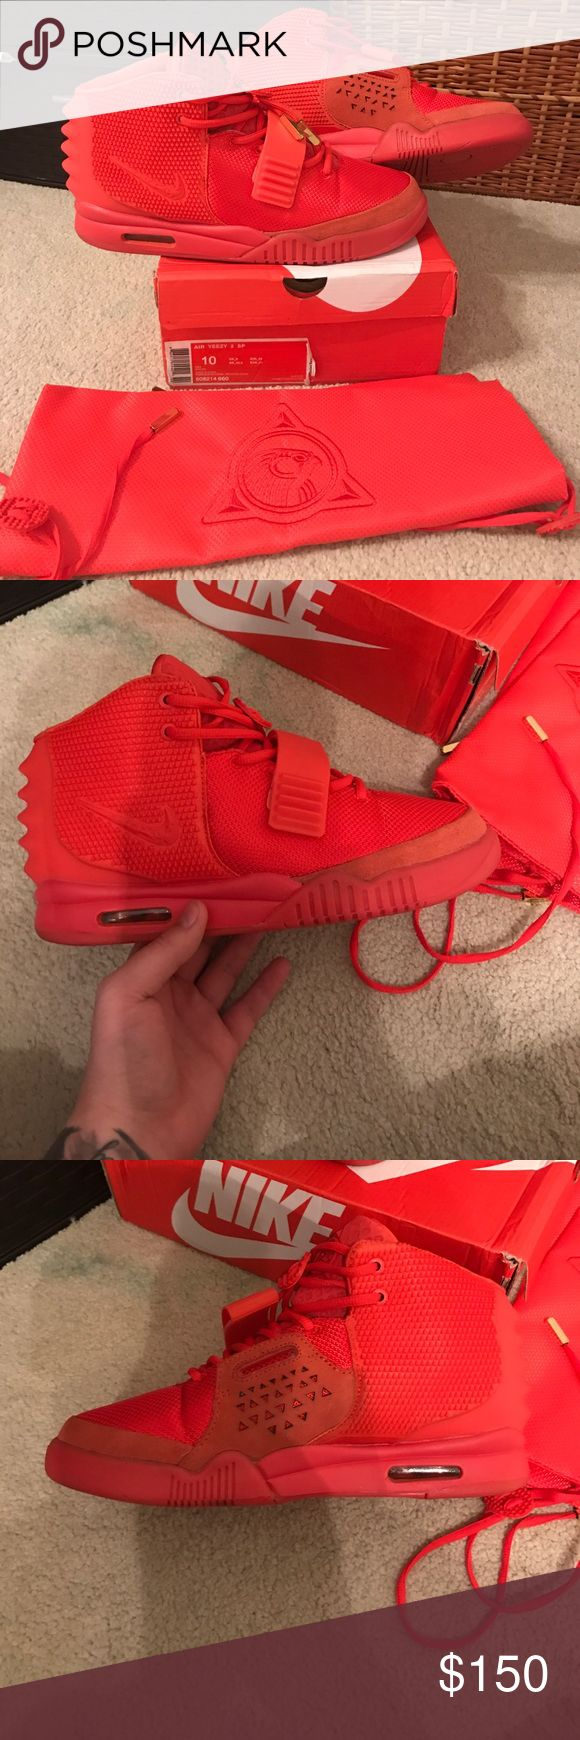 Yeezy 2 red October Replica Nike yeezy 2 Red October Replica. They're very close to retail, I've worn them once to dinner and they've been sitting in my closet ever since. I'm willing to send more pictures, they come with box and dust bag. They glow very well! $150 obo trades accepted. Nike Shoes Sneakers